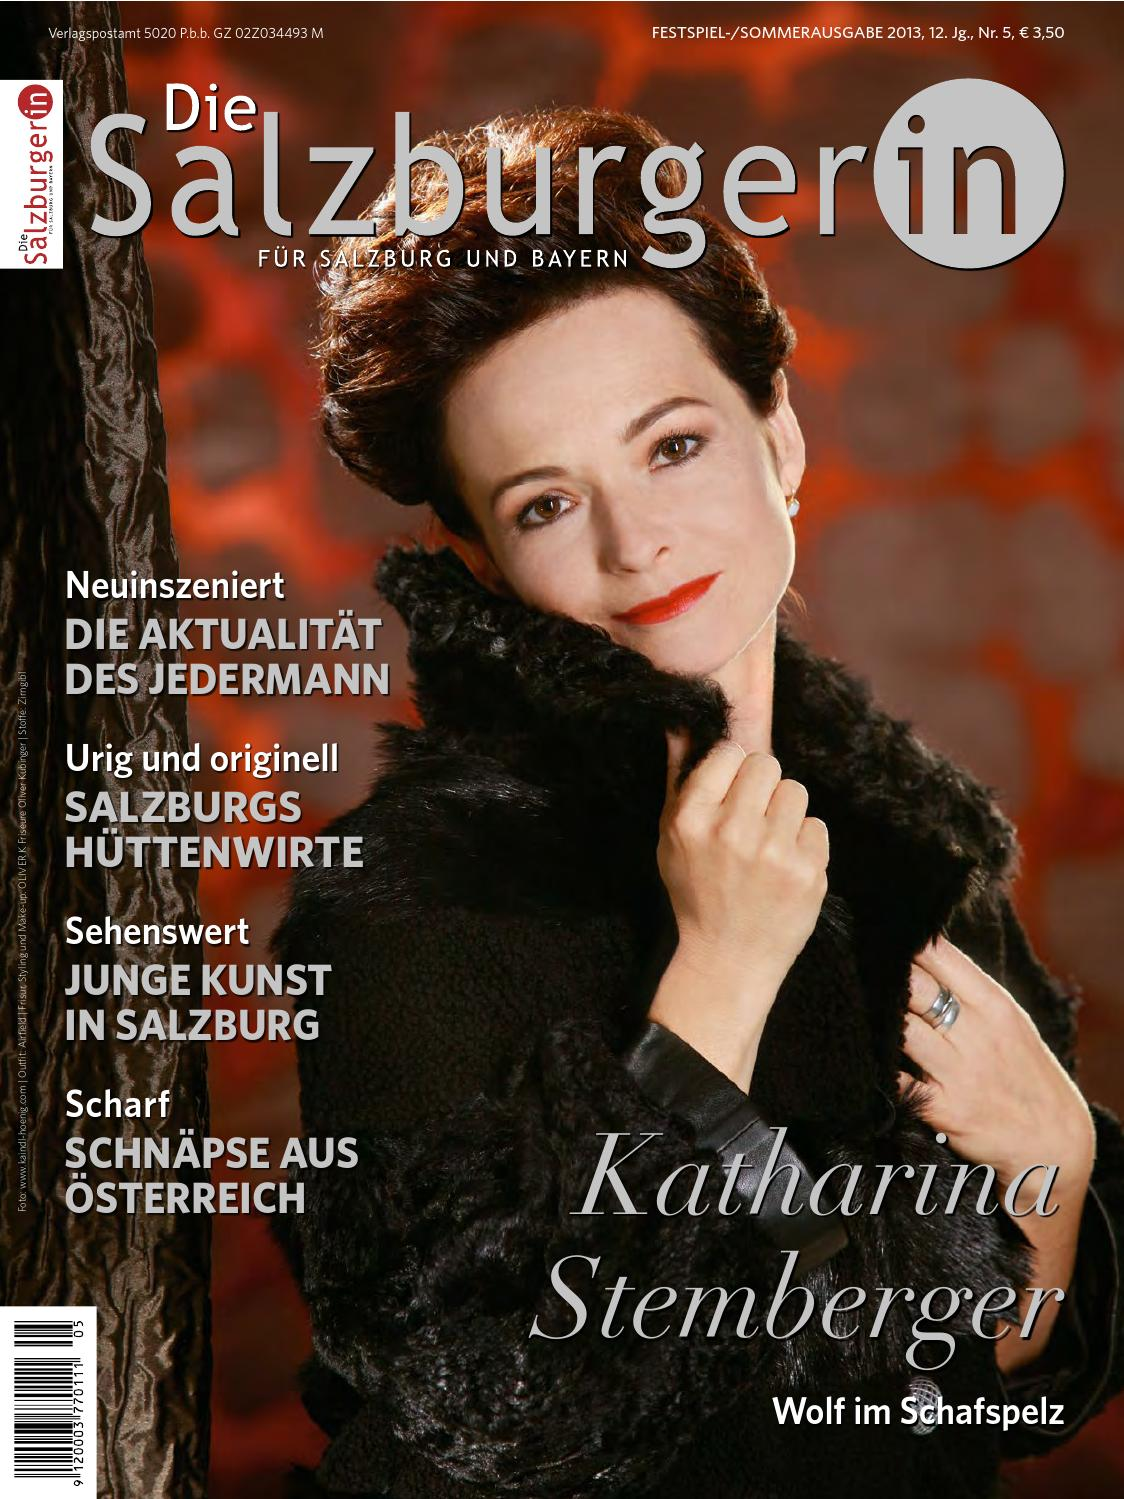 Die salzburgerin (juli 2013) by target group   issuu